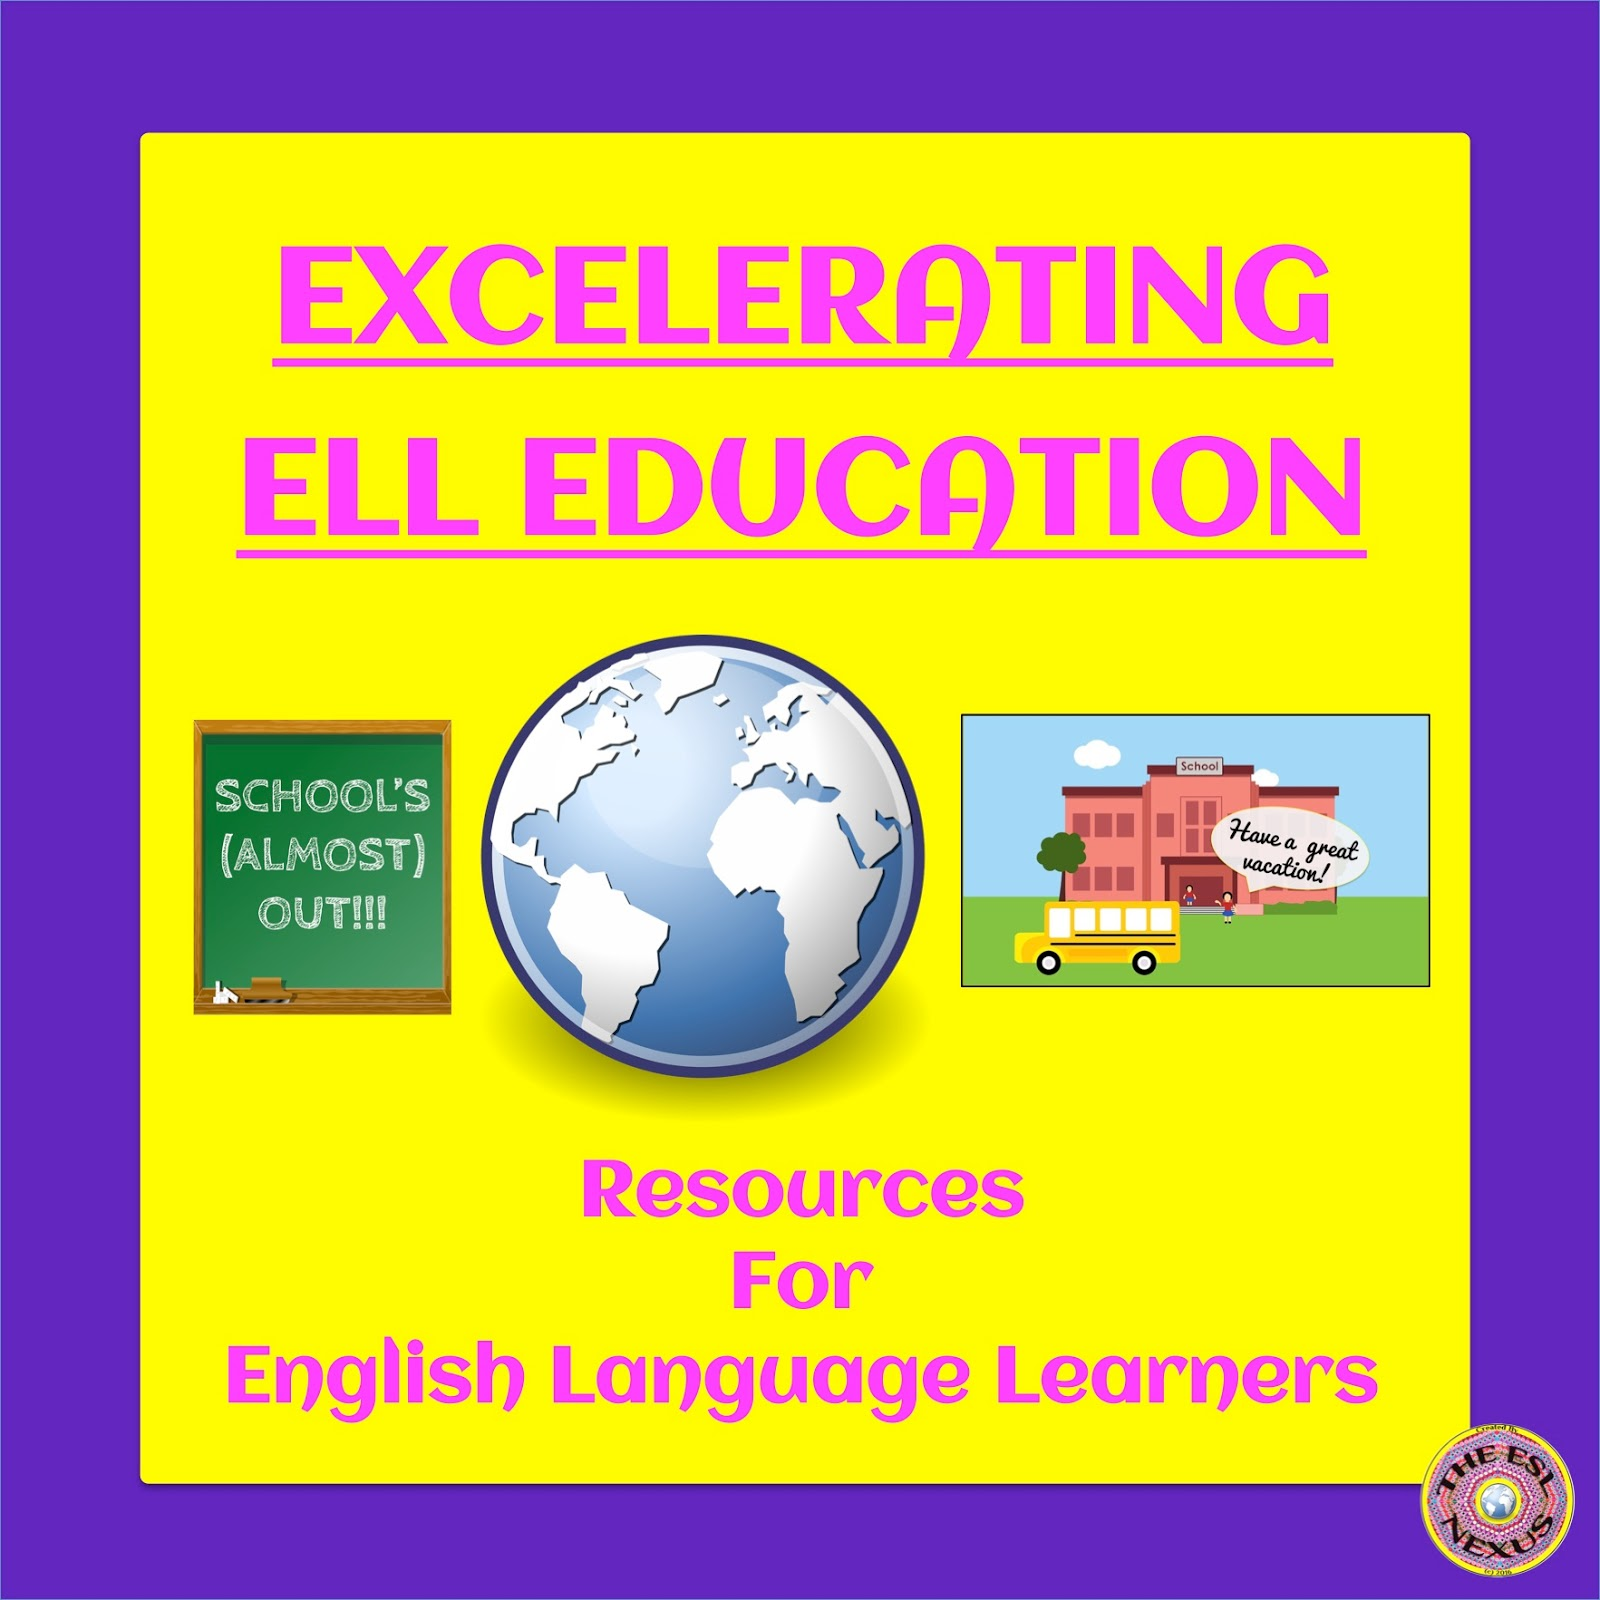 Excelerating ELL Education's May linky party: End of Year Resources